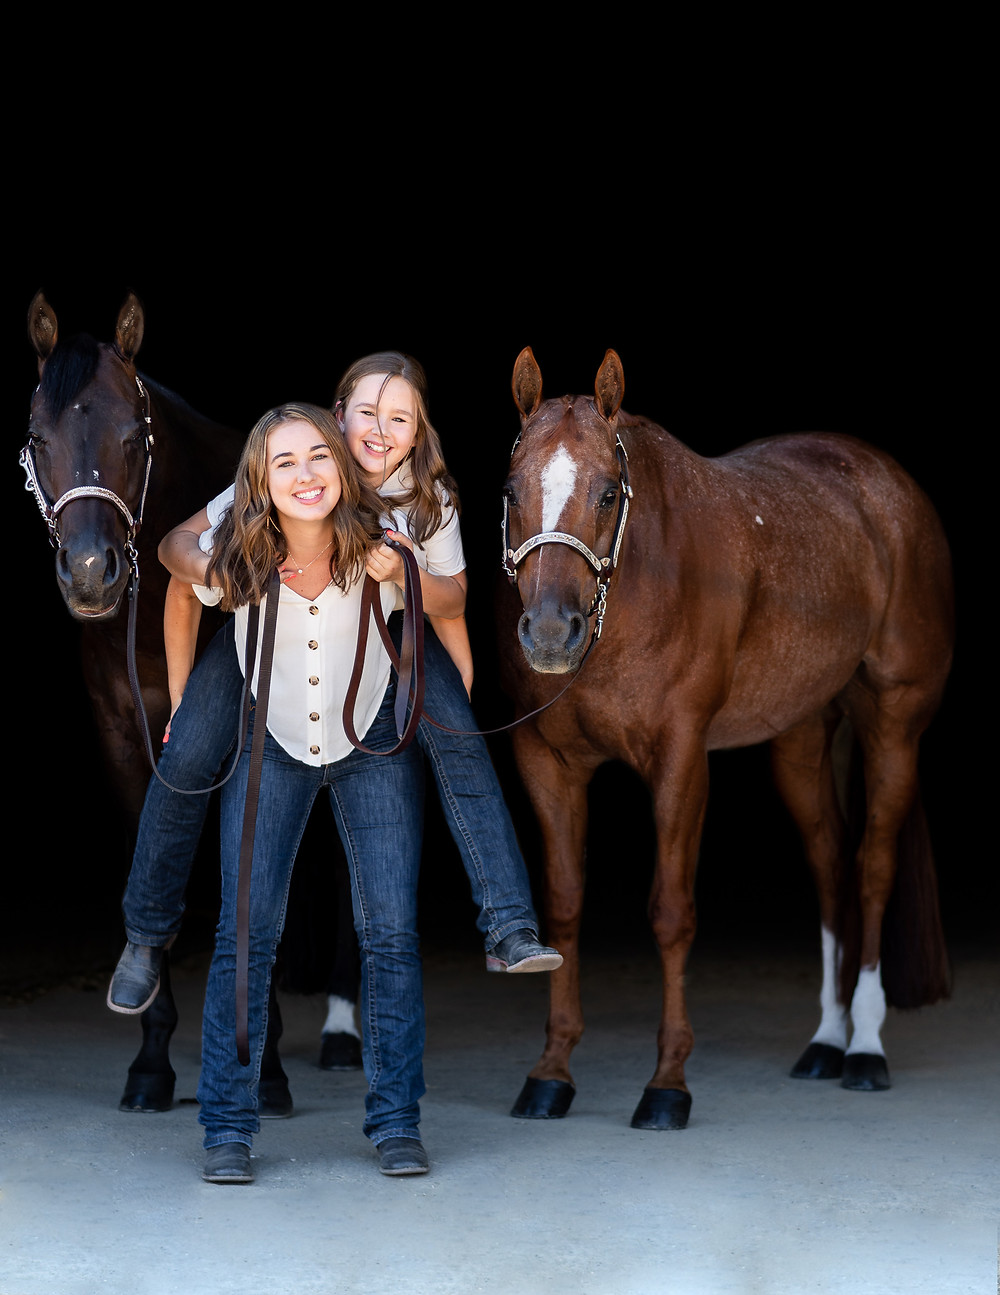 The Gratchner sisters and their horses